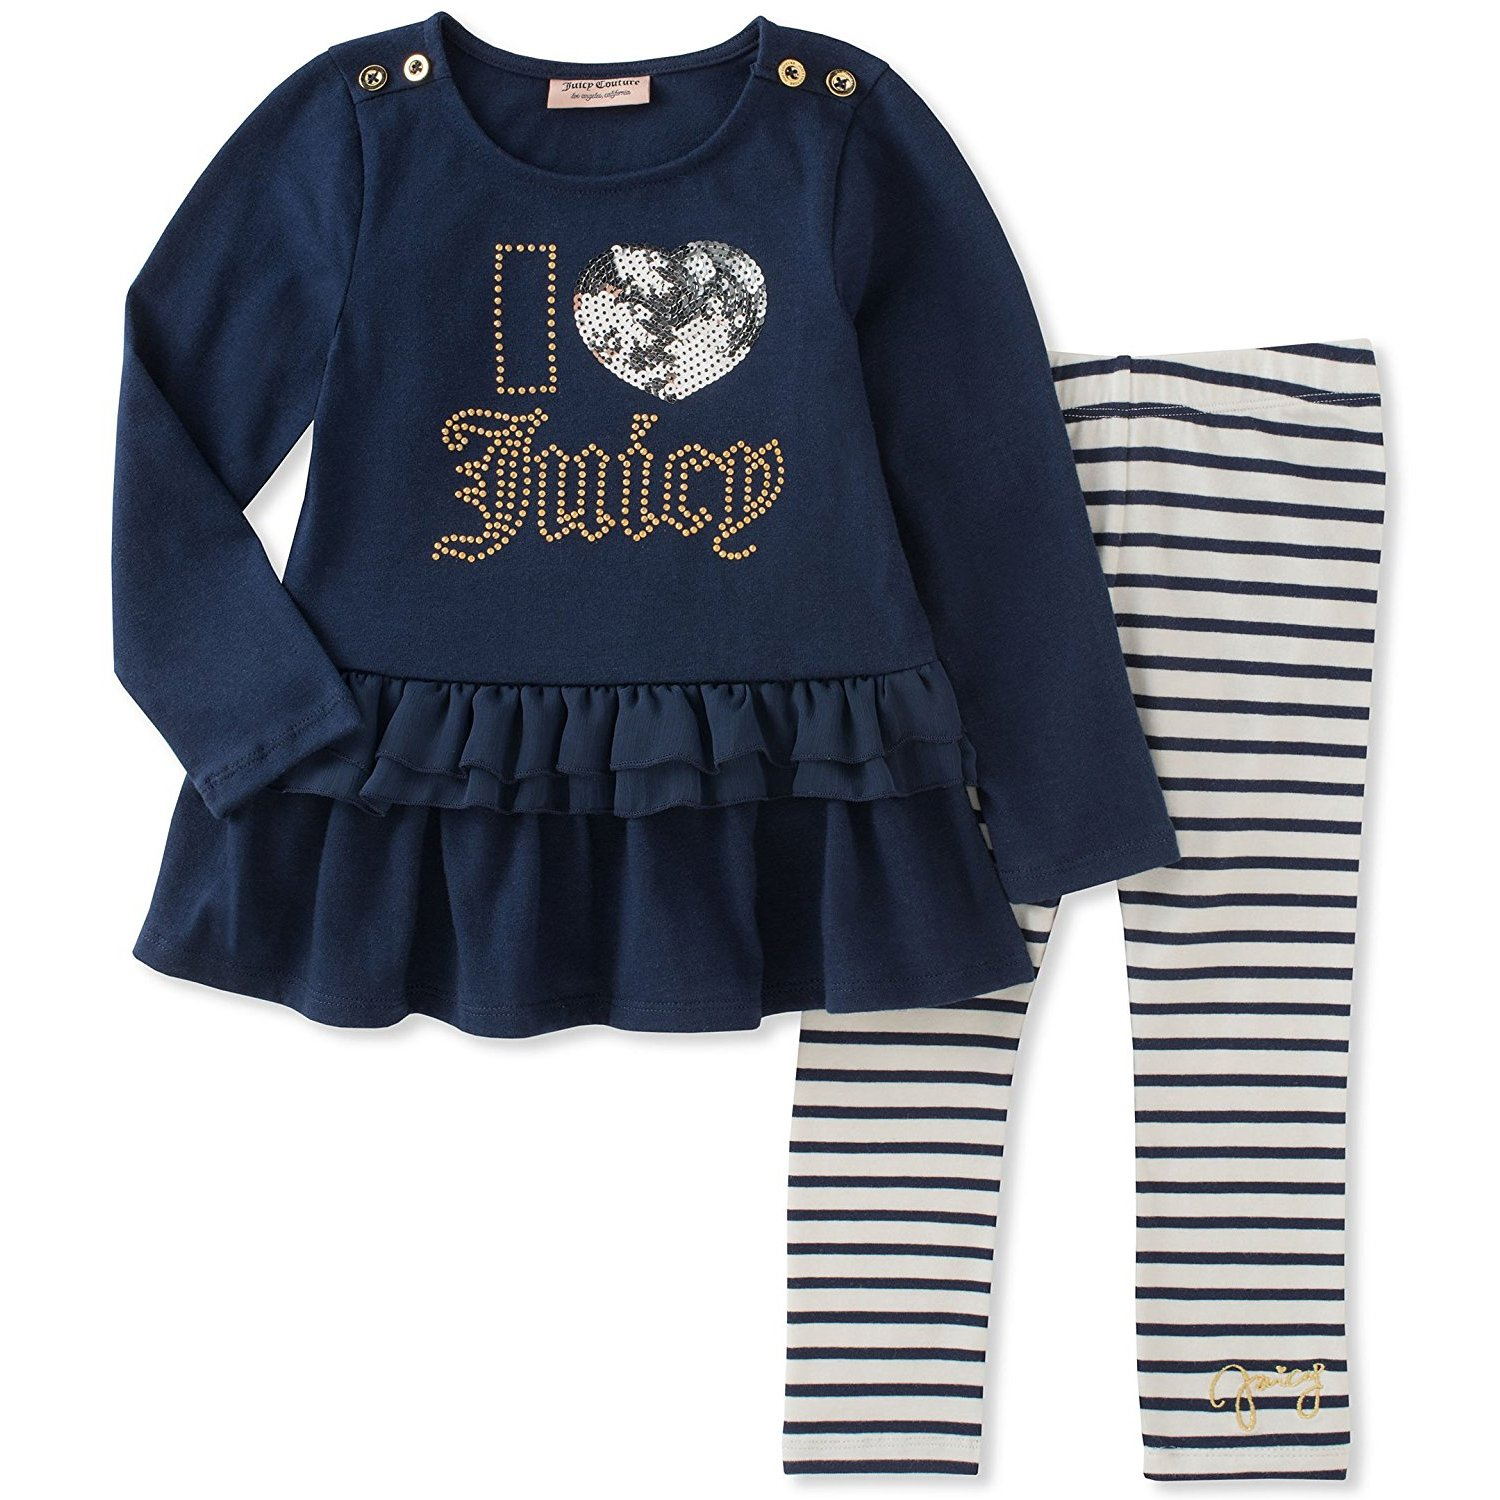 Juicy Couture Girls' Little Tunic Legging Set, White/Medieval Blue, 5 by Juicy Couture